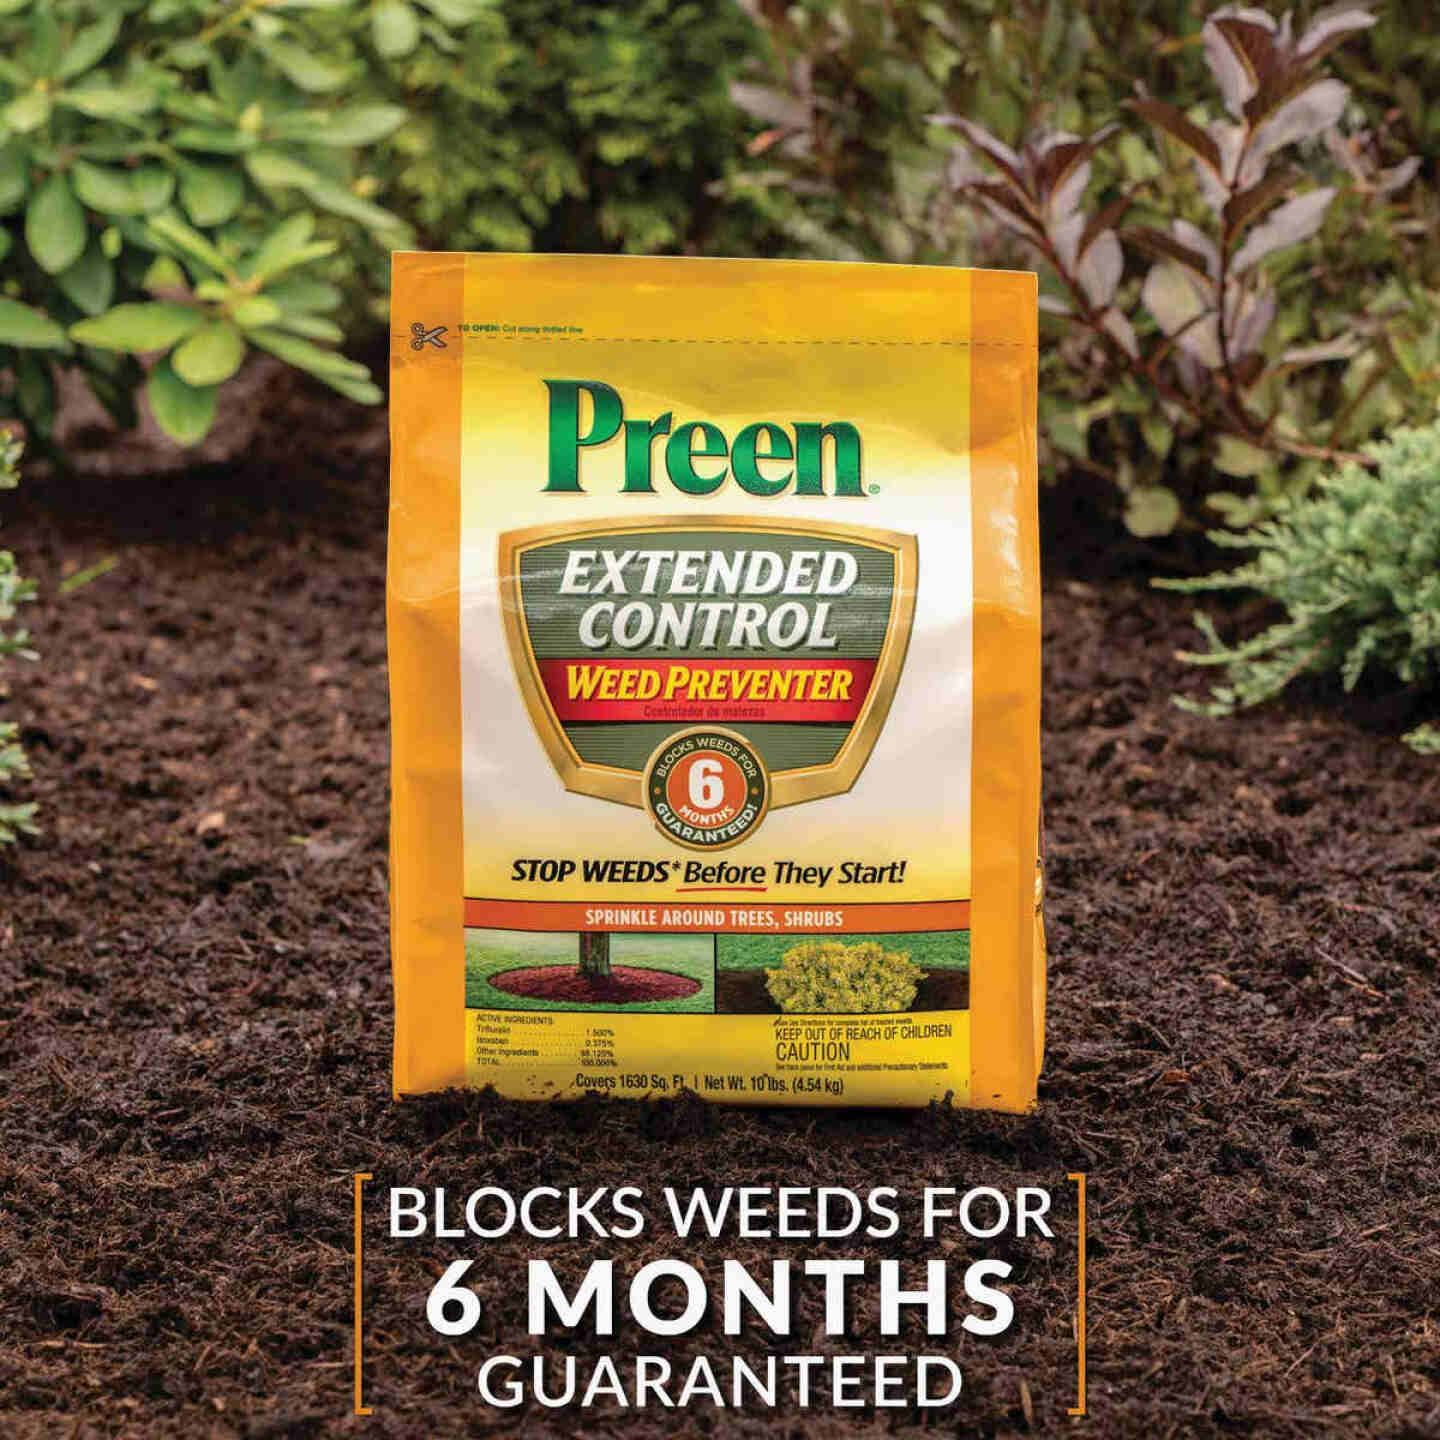 Preen Extended Control Weed Preventer, 10 Lb. Image 3